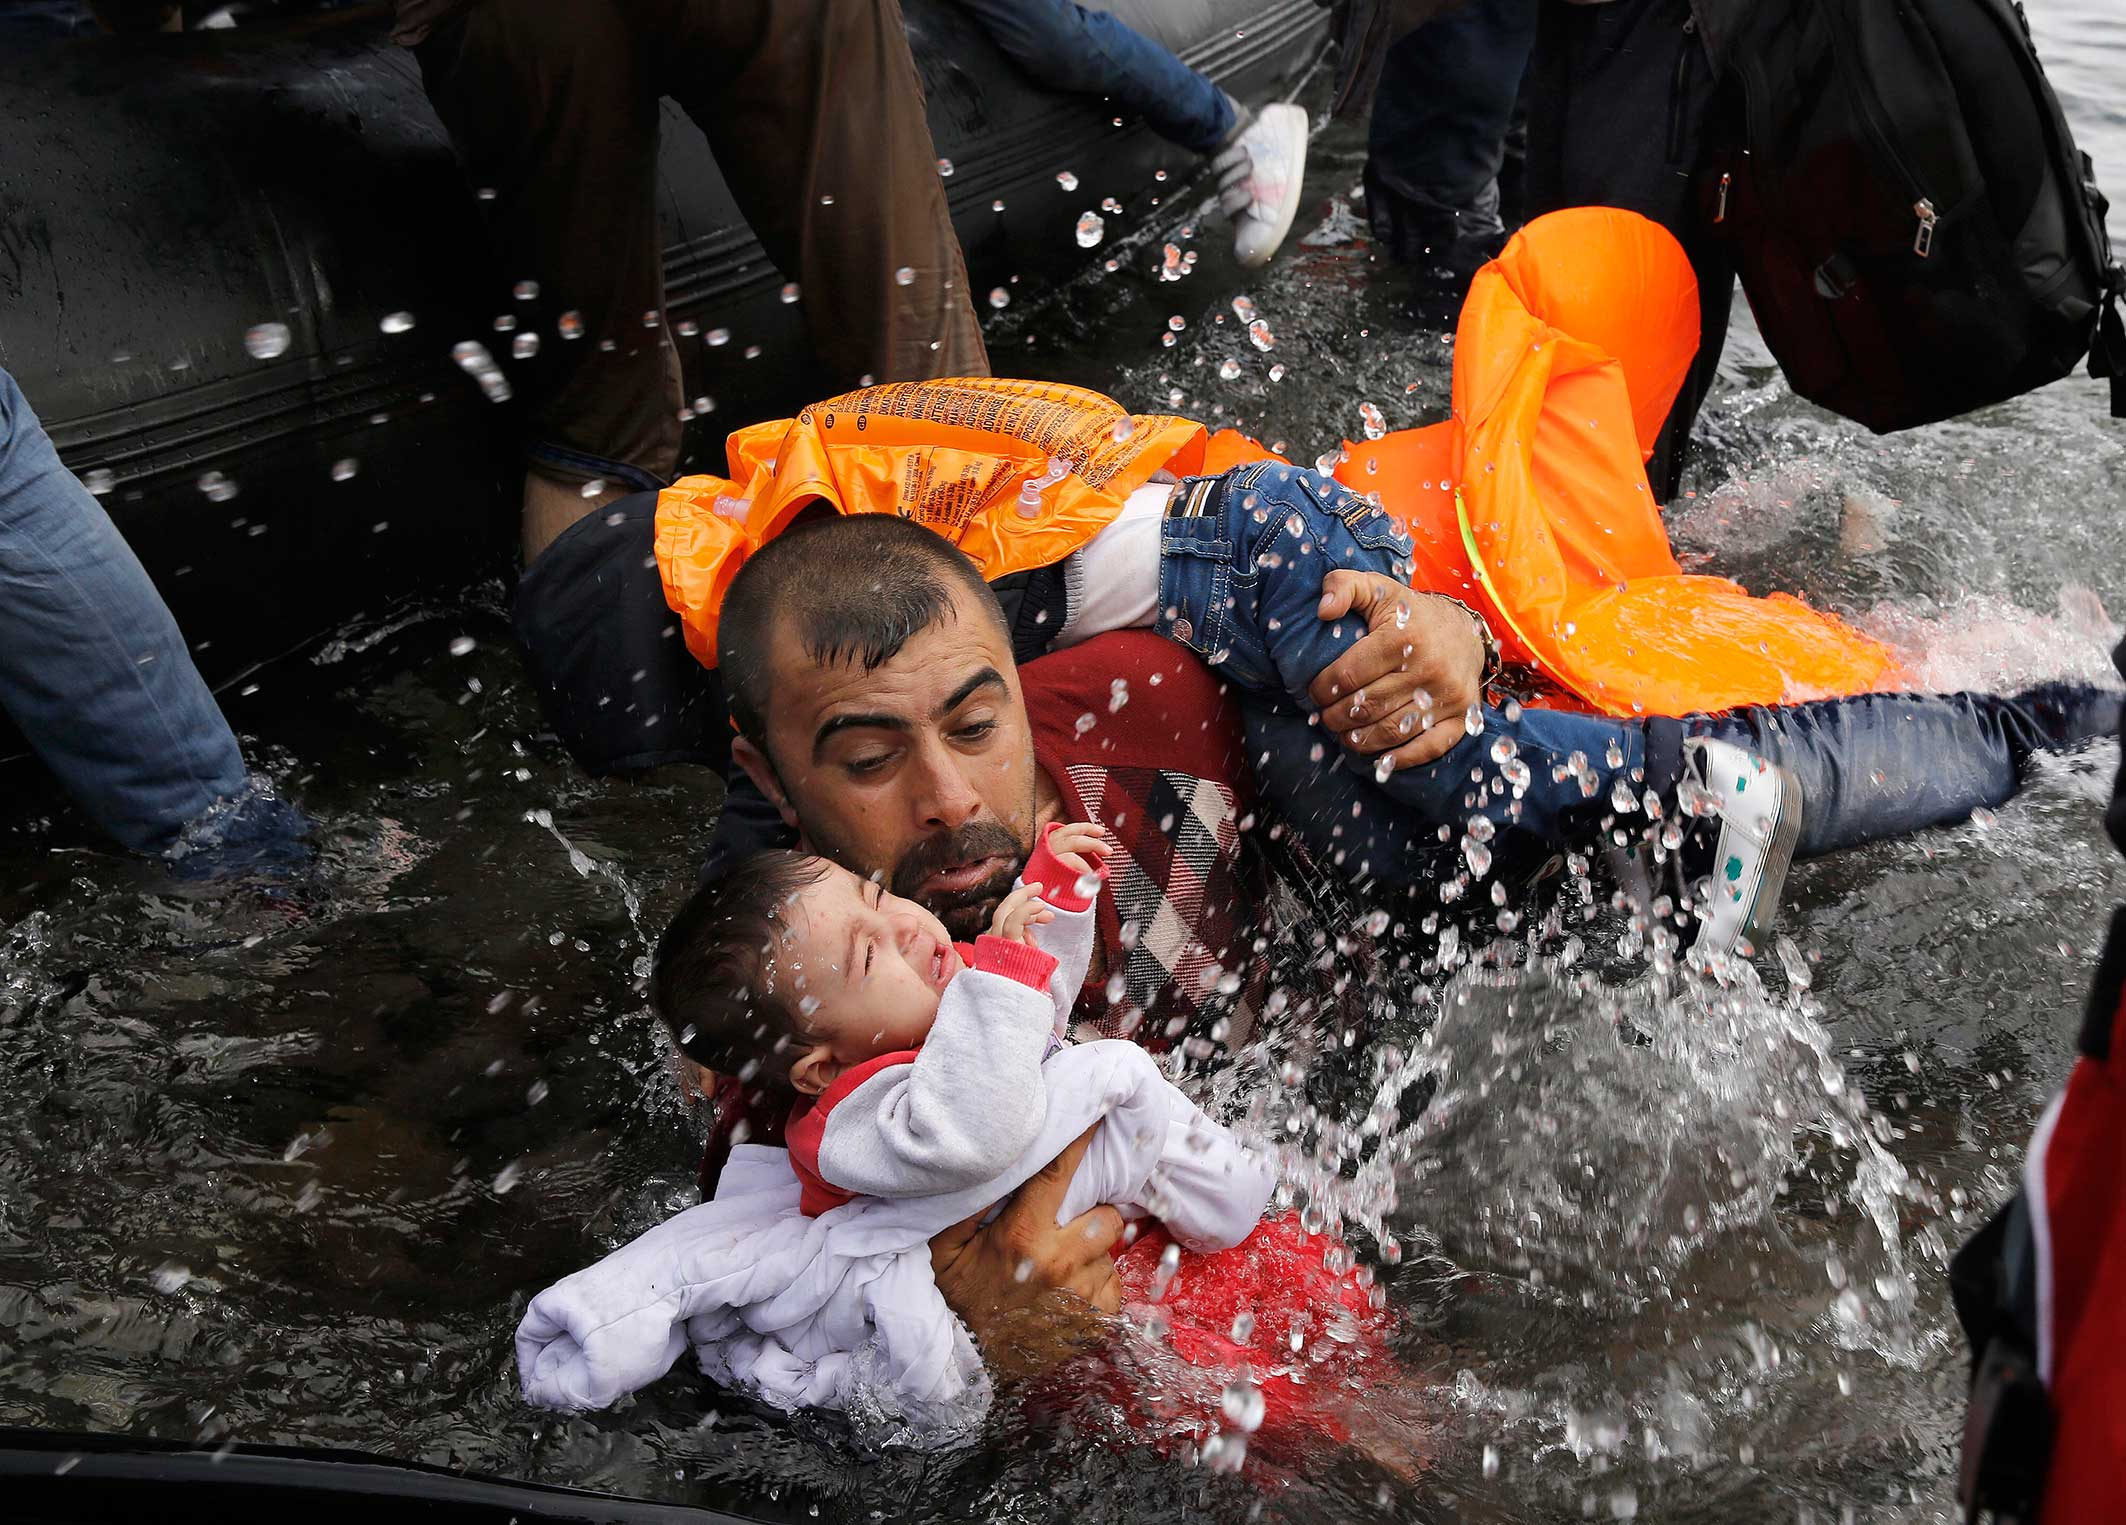 A Syrian with his two children struggling to disembark after crossing from Turkey. Island of Lesbos, Sept. 24, 2015.